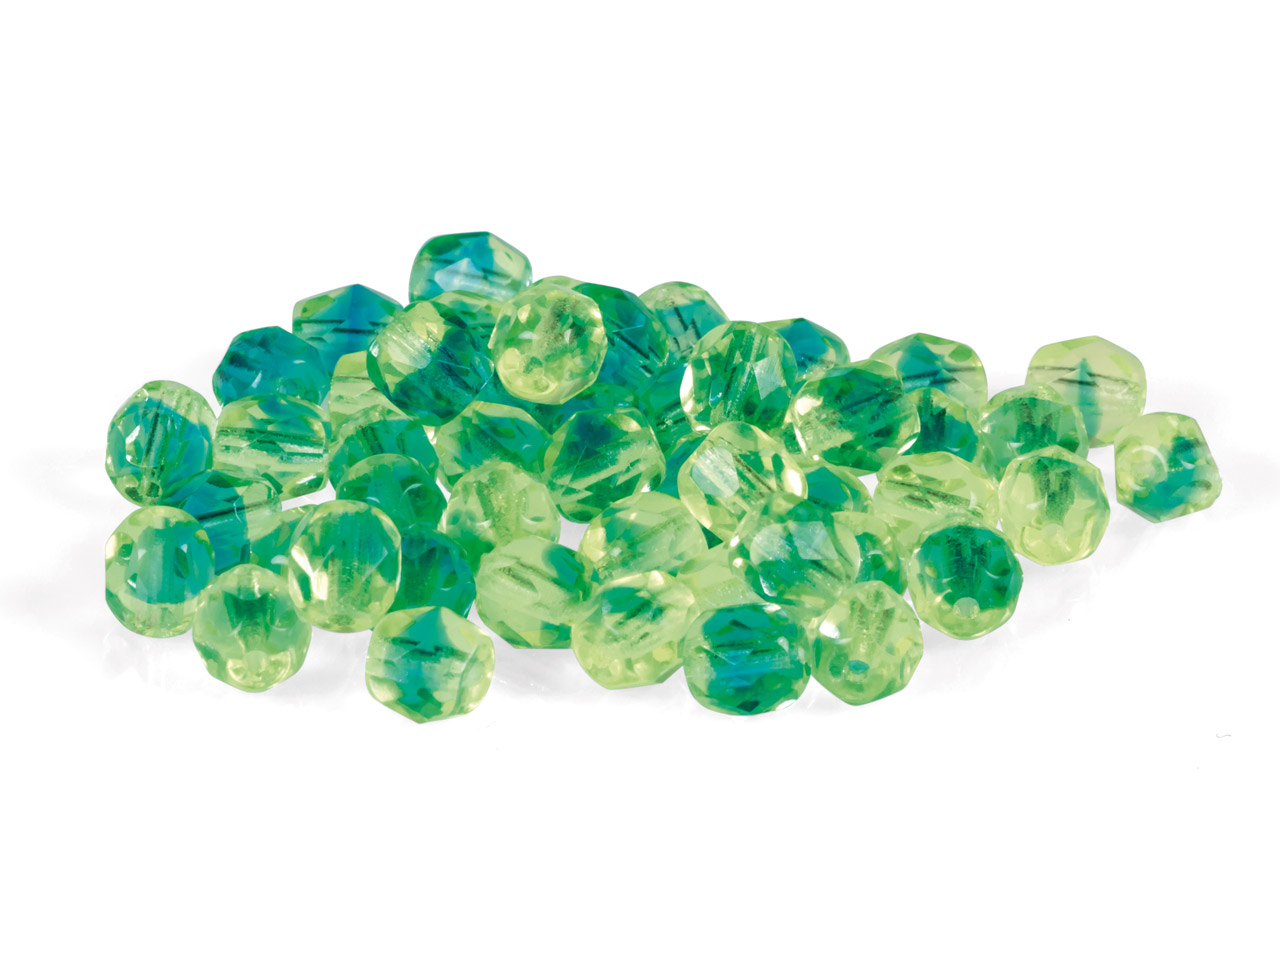 6mm Czech Fire Polished Glass      Beads, 2-tone Green And Aqua,      Pack of 50